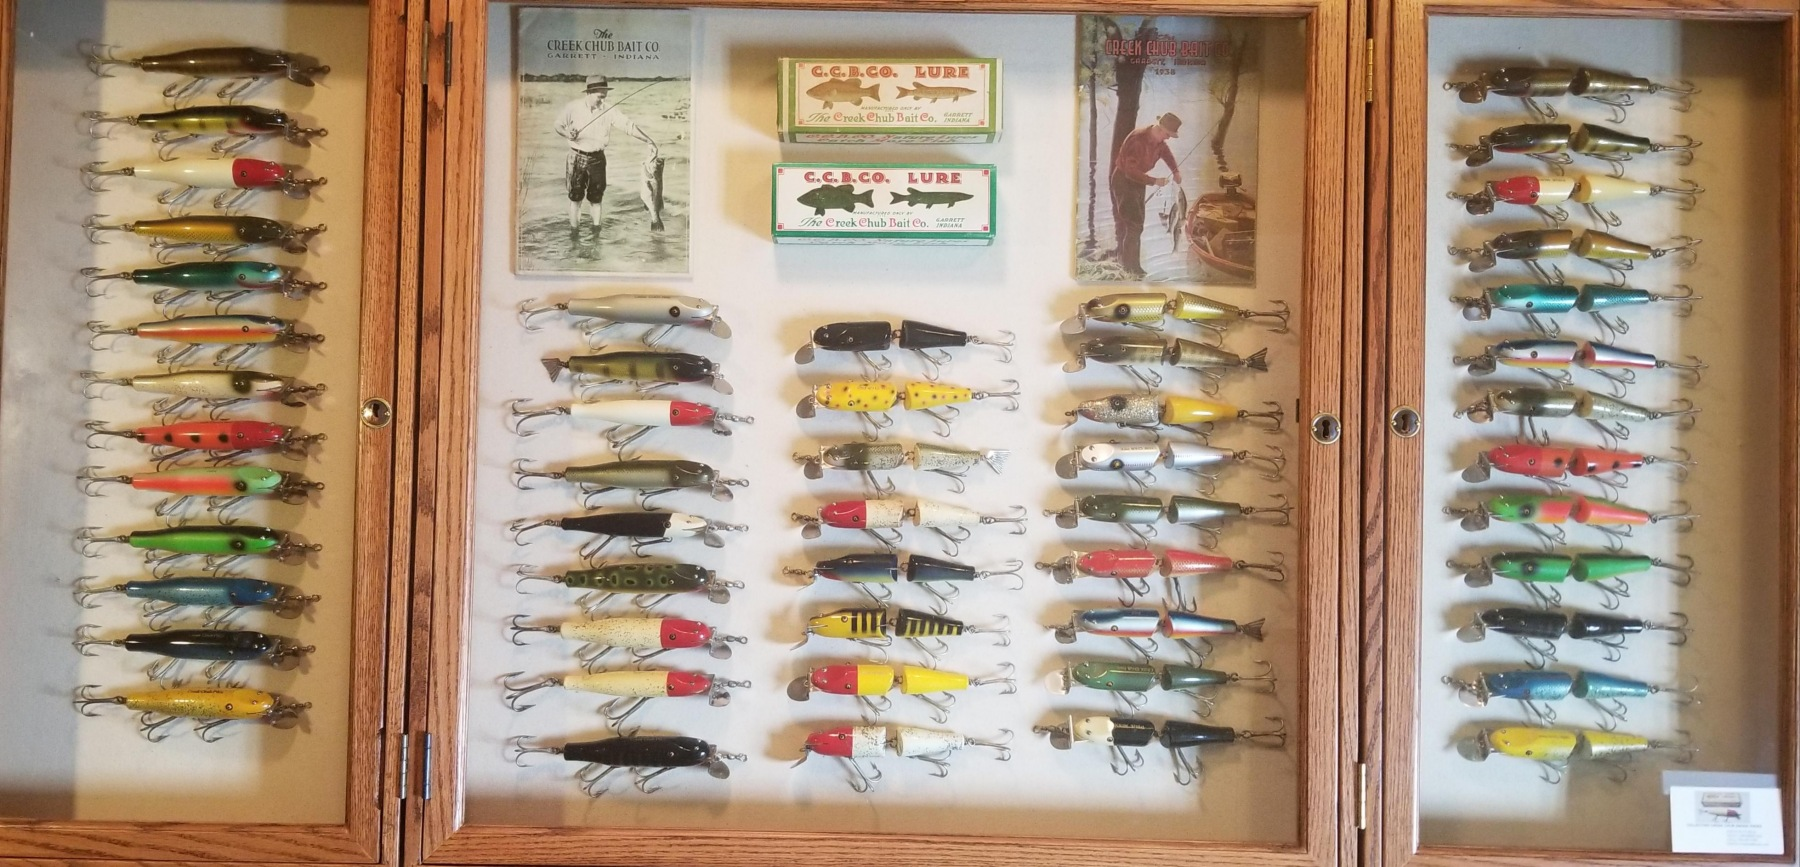 0 - Snook Pikie Collection.jpg